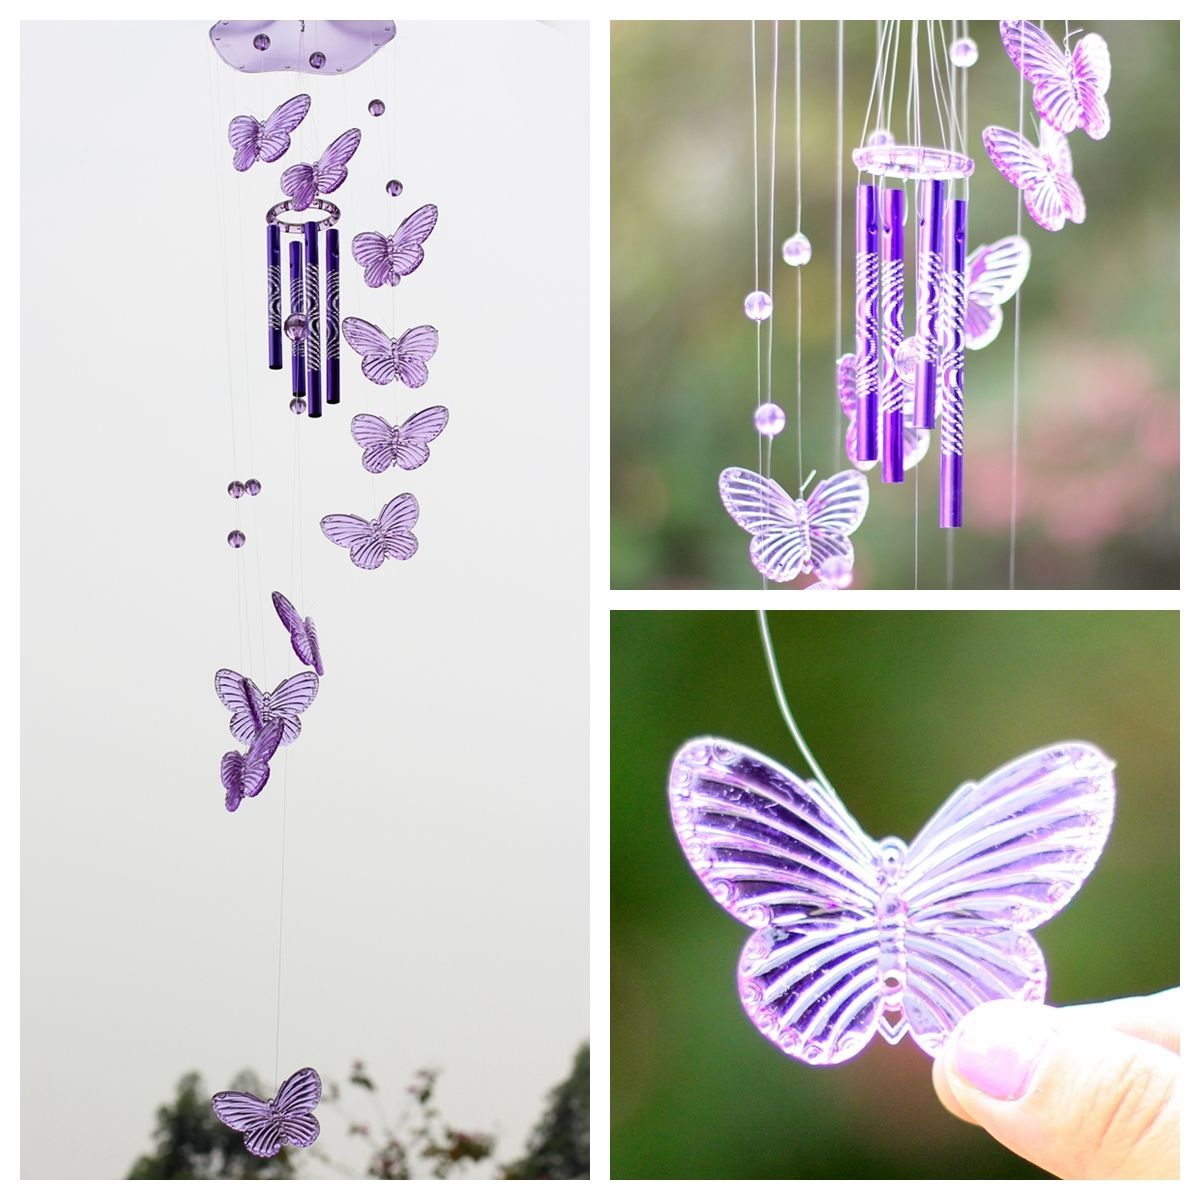 Crystal butterfly wind chime bell garden ornament gift for Outdoor hanging ornaments